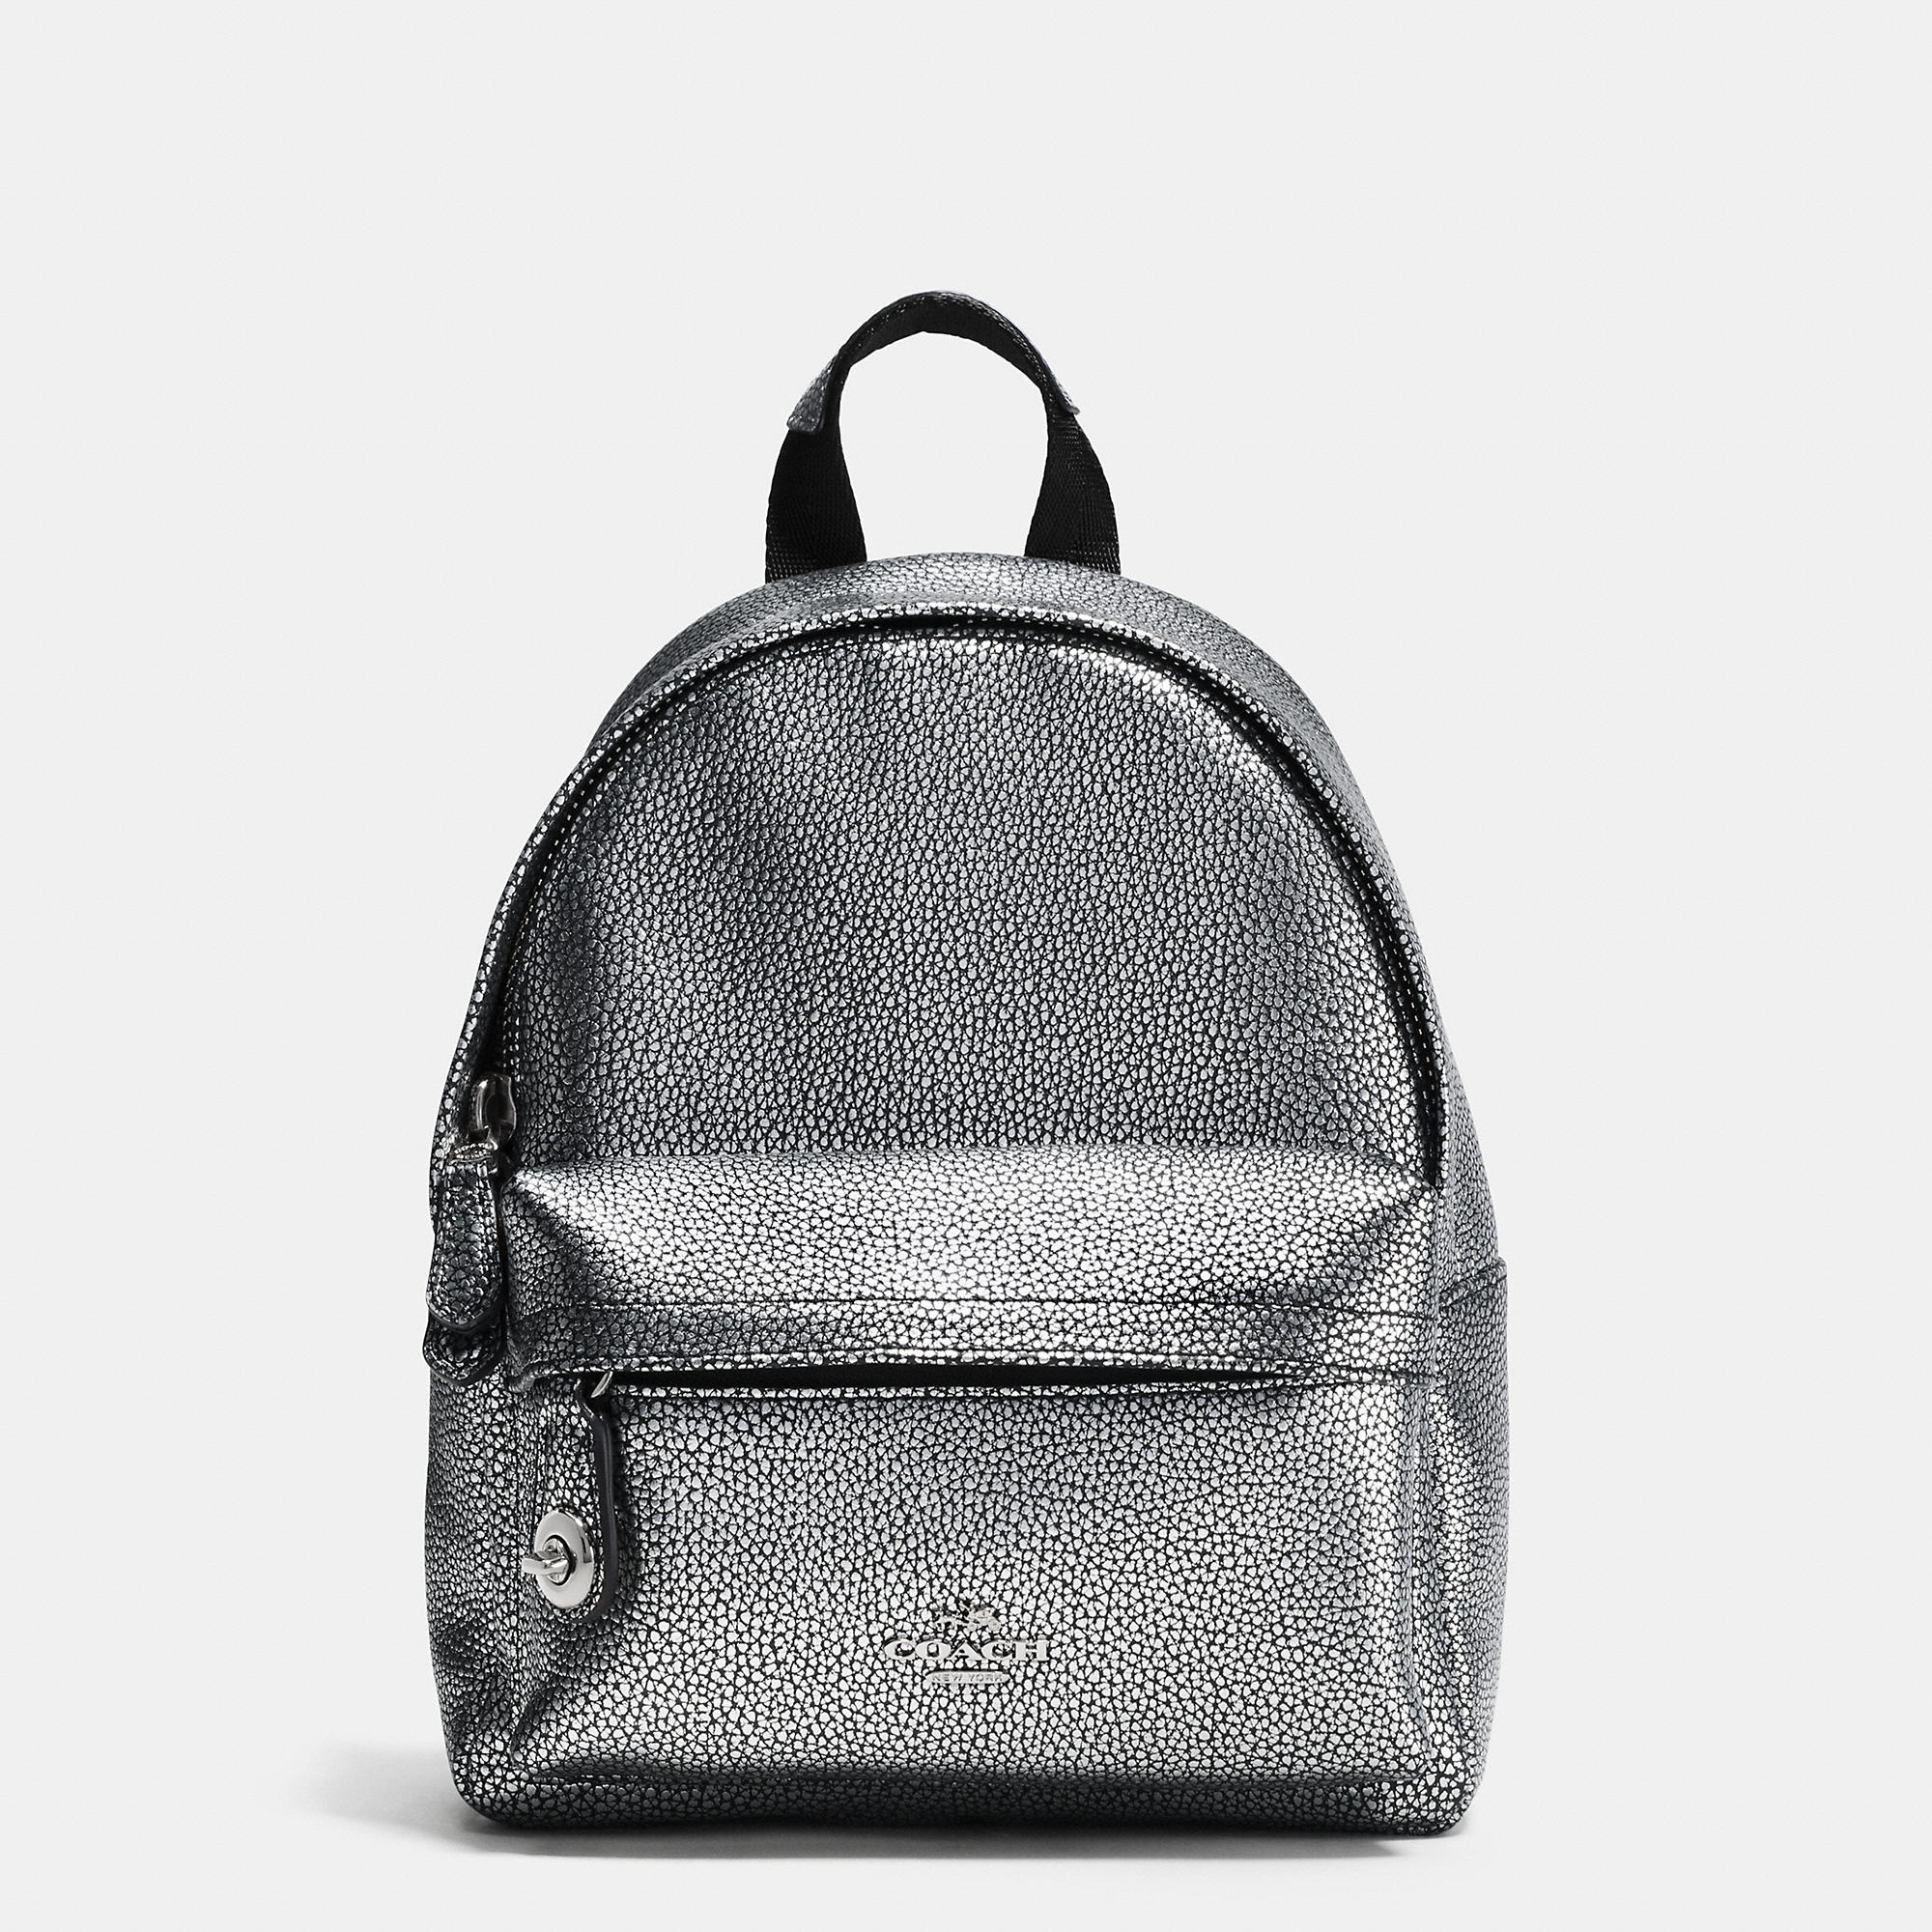 Coach Mini Campus Backpack In Pebble Leather In Metallic